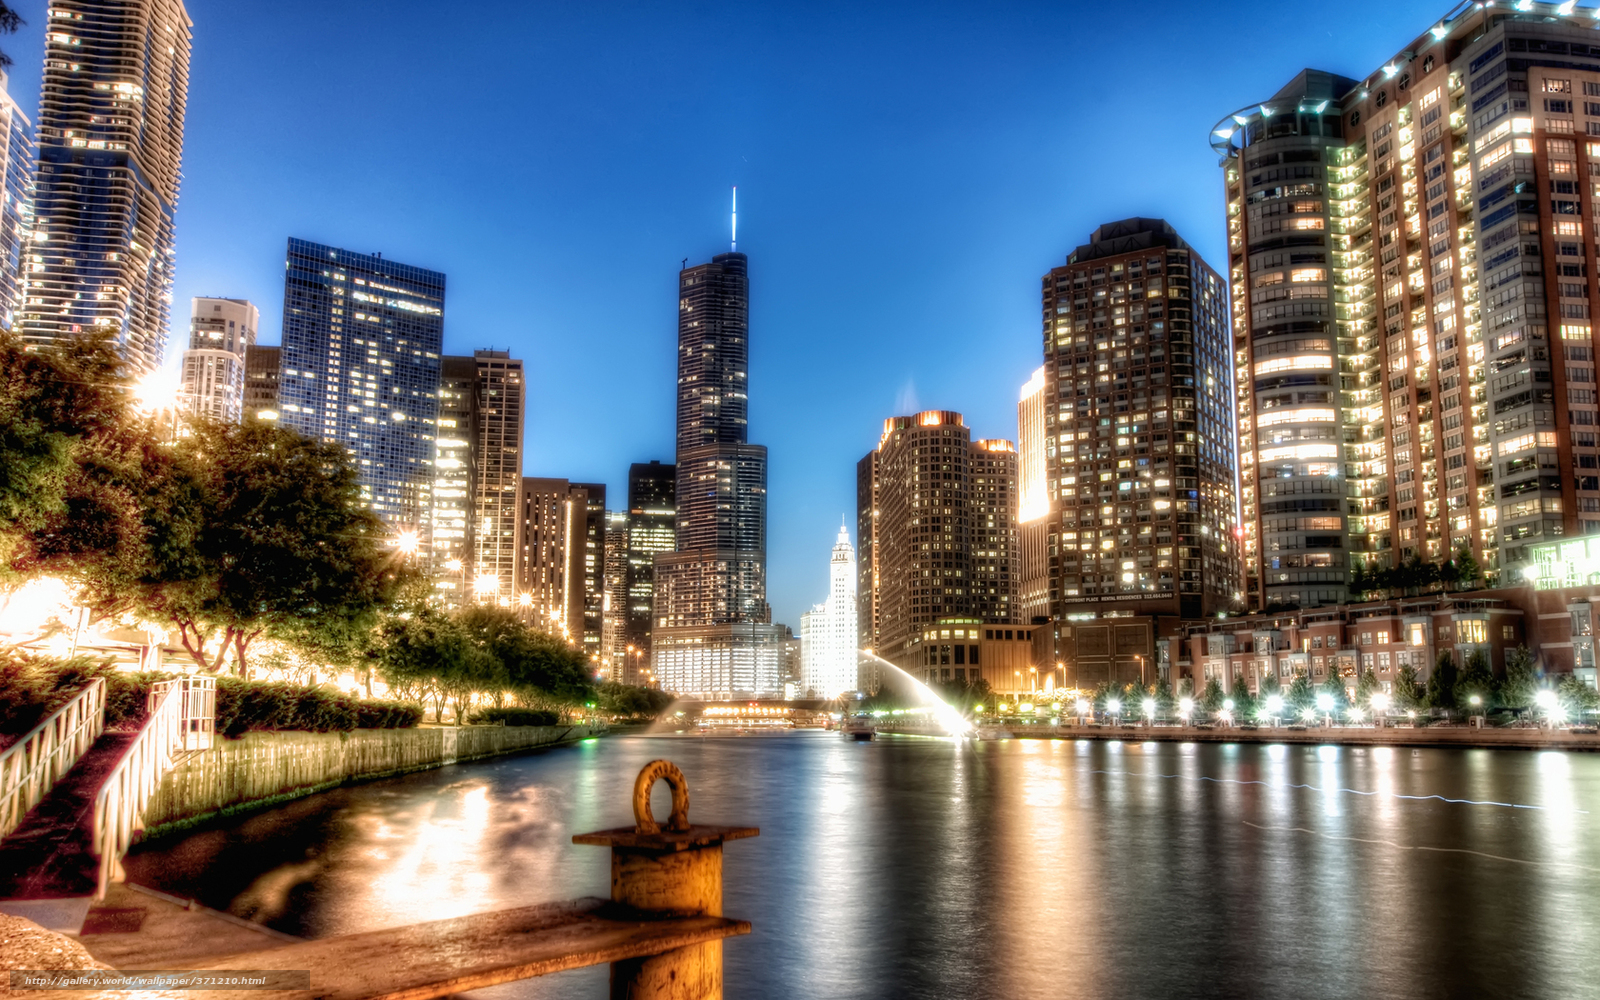 Download wallpaper Chicago Illinois night desktop 1600x1000